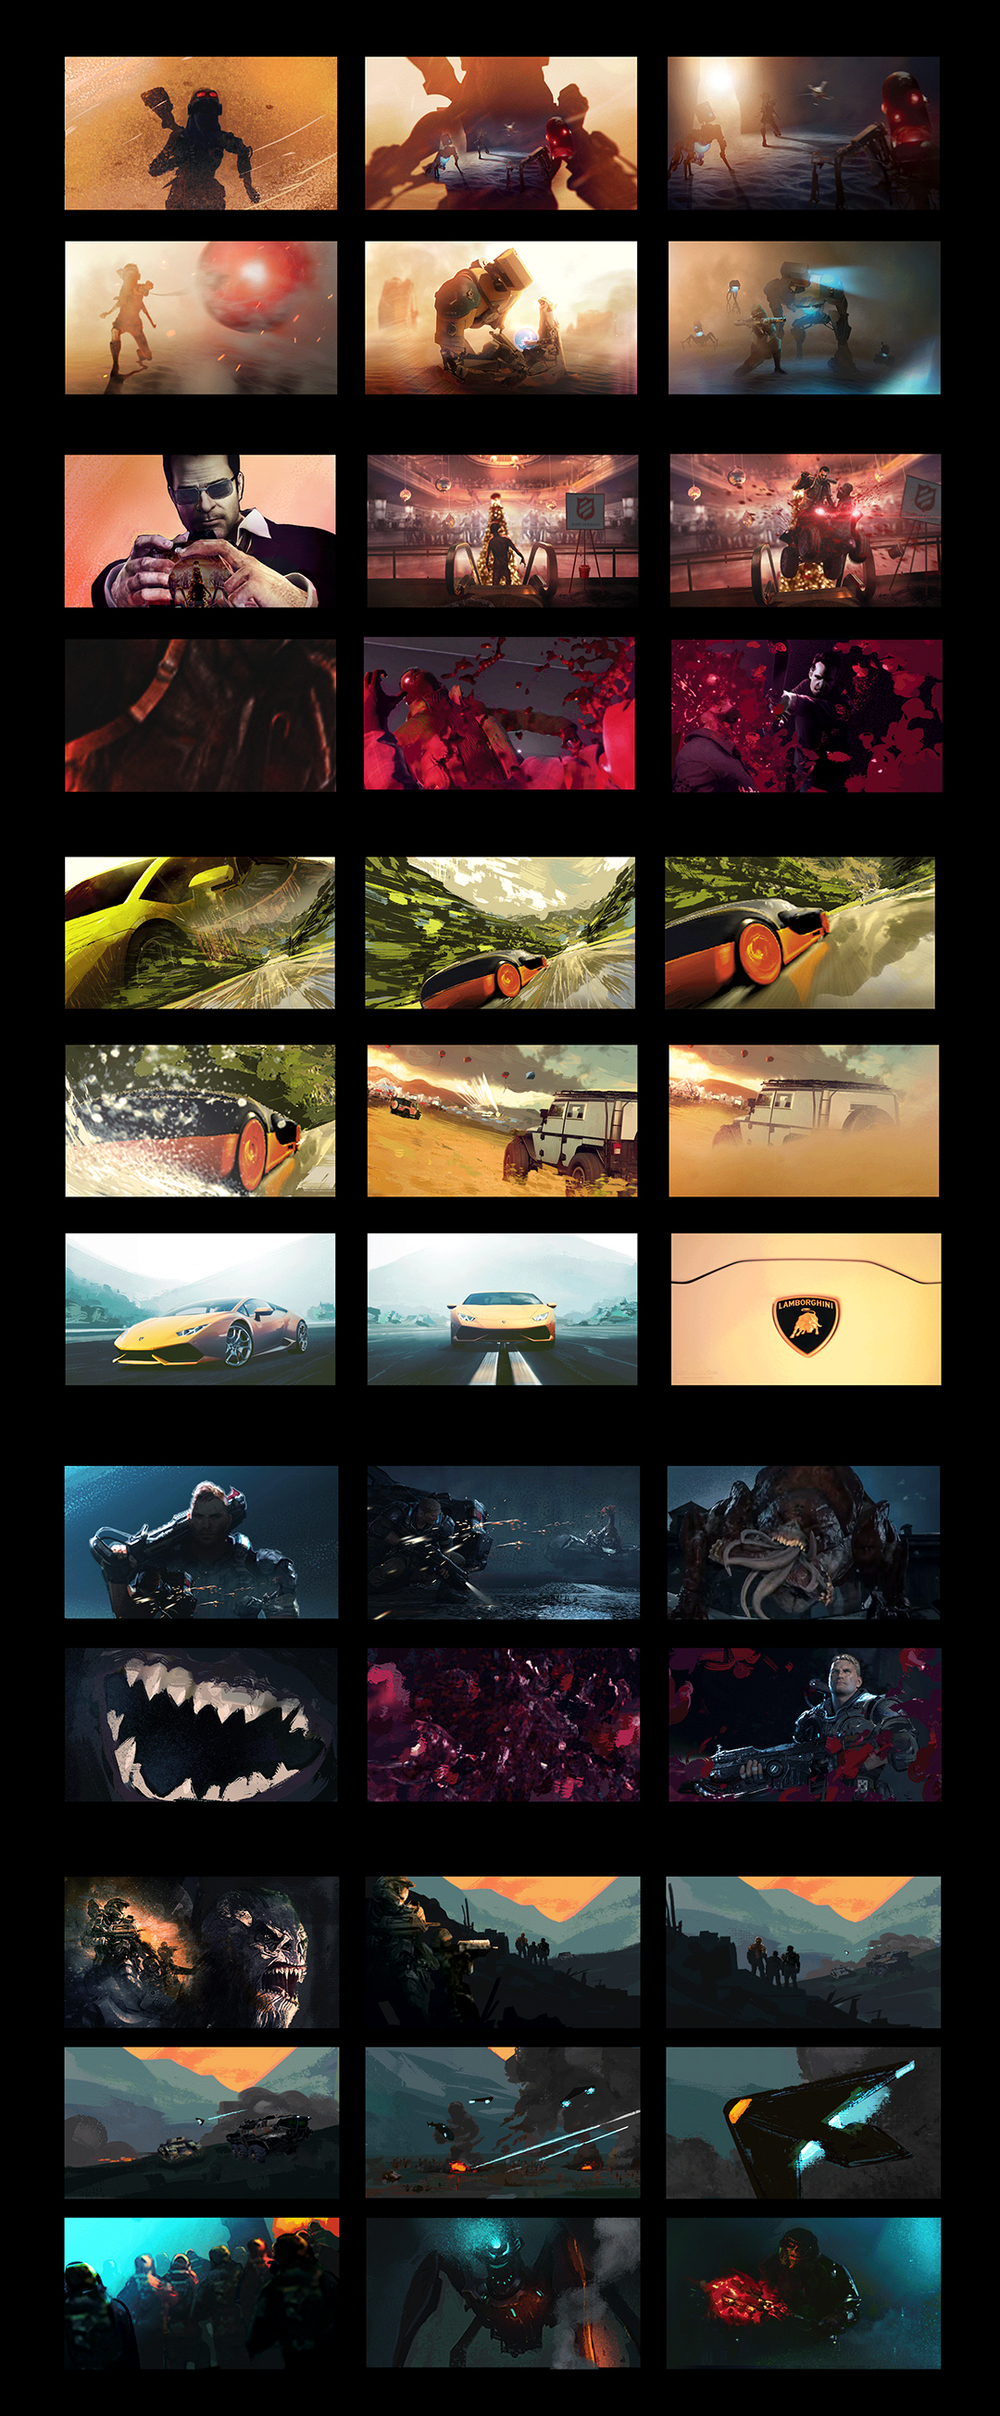 Image: This early storyboard sequence mapped out the action, camera moves, transitions, and colors of each key scene. The goal was to make each game stand out on their own, while finding a dynamic way to weave all of the stories together.